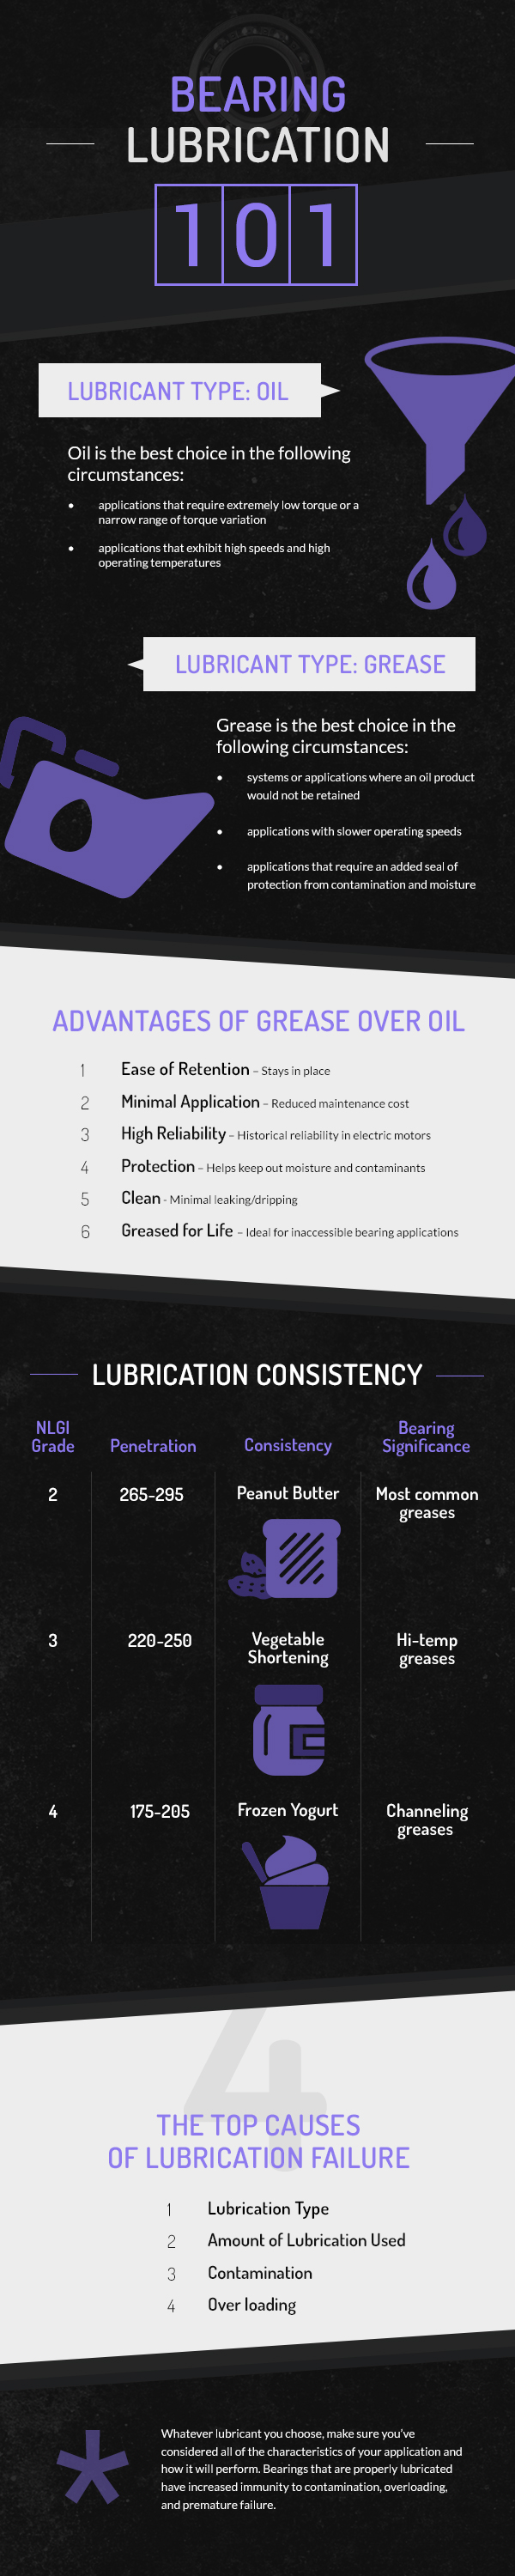 bearing lubrication infographic